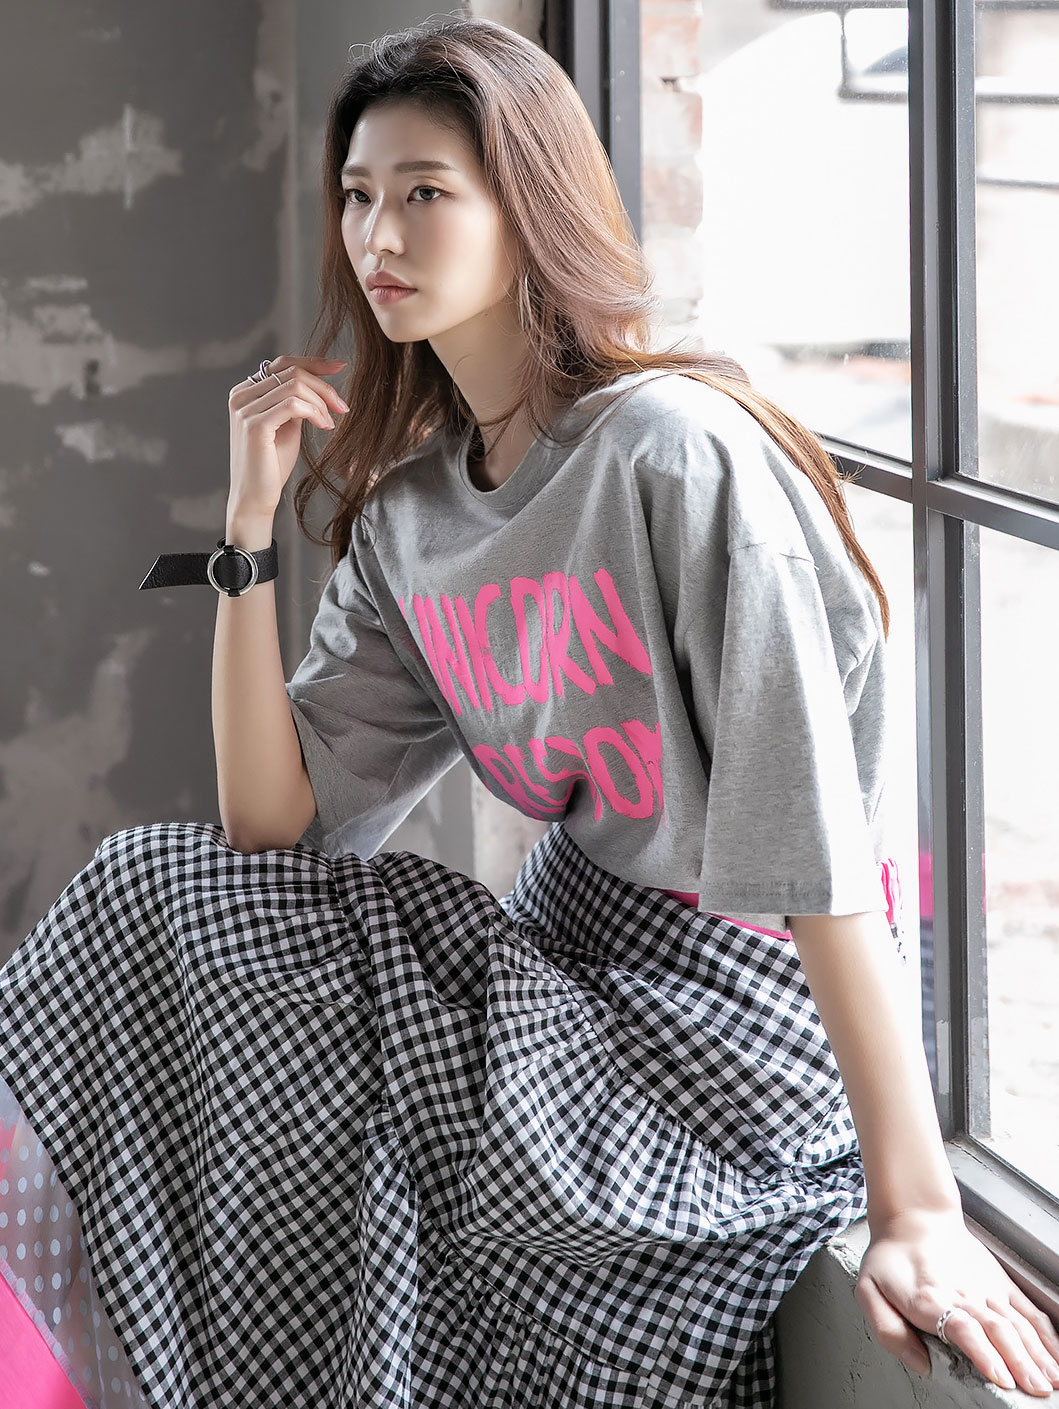 E2188 아테이 유니콘 Lettering Top(12th REORDER)